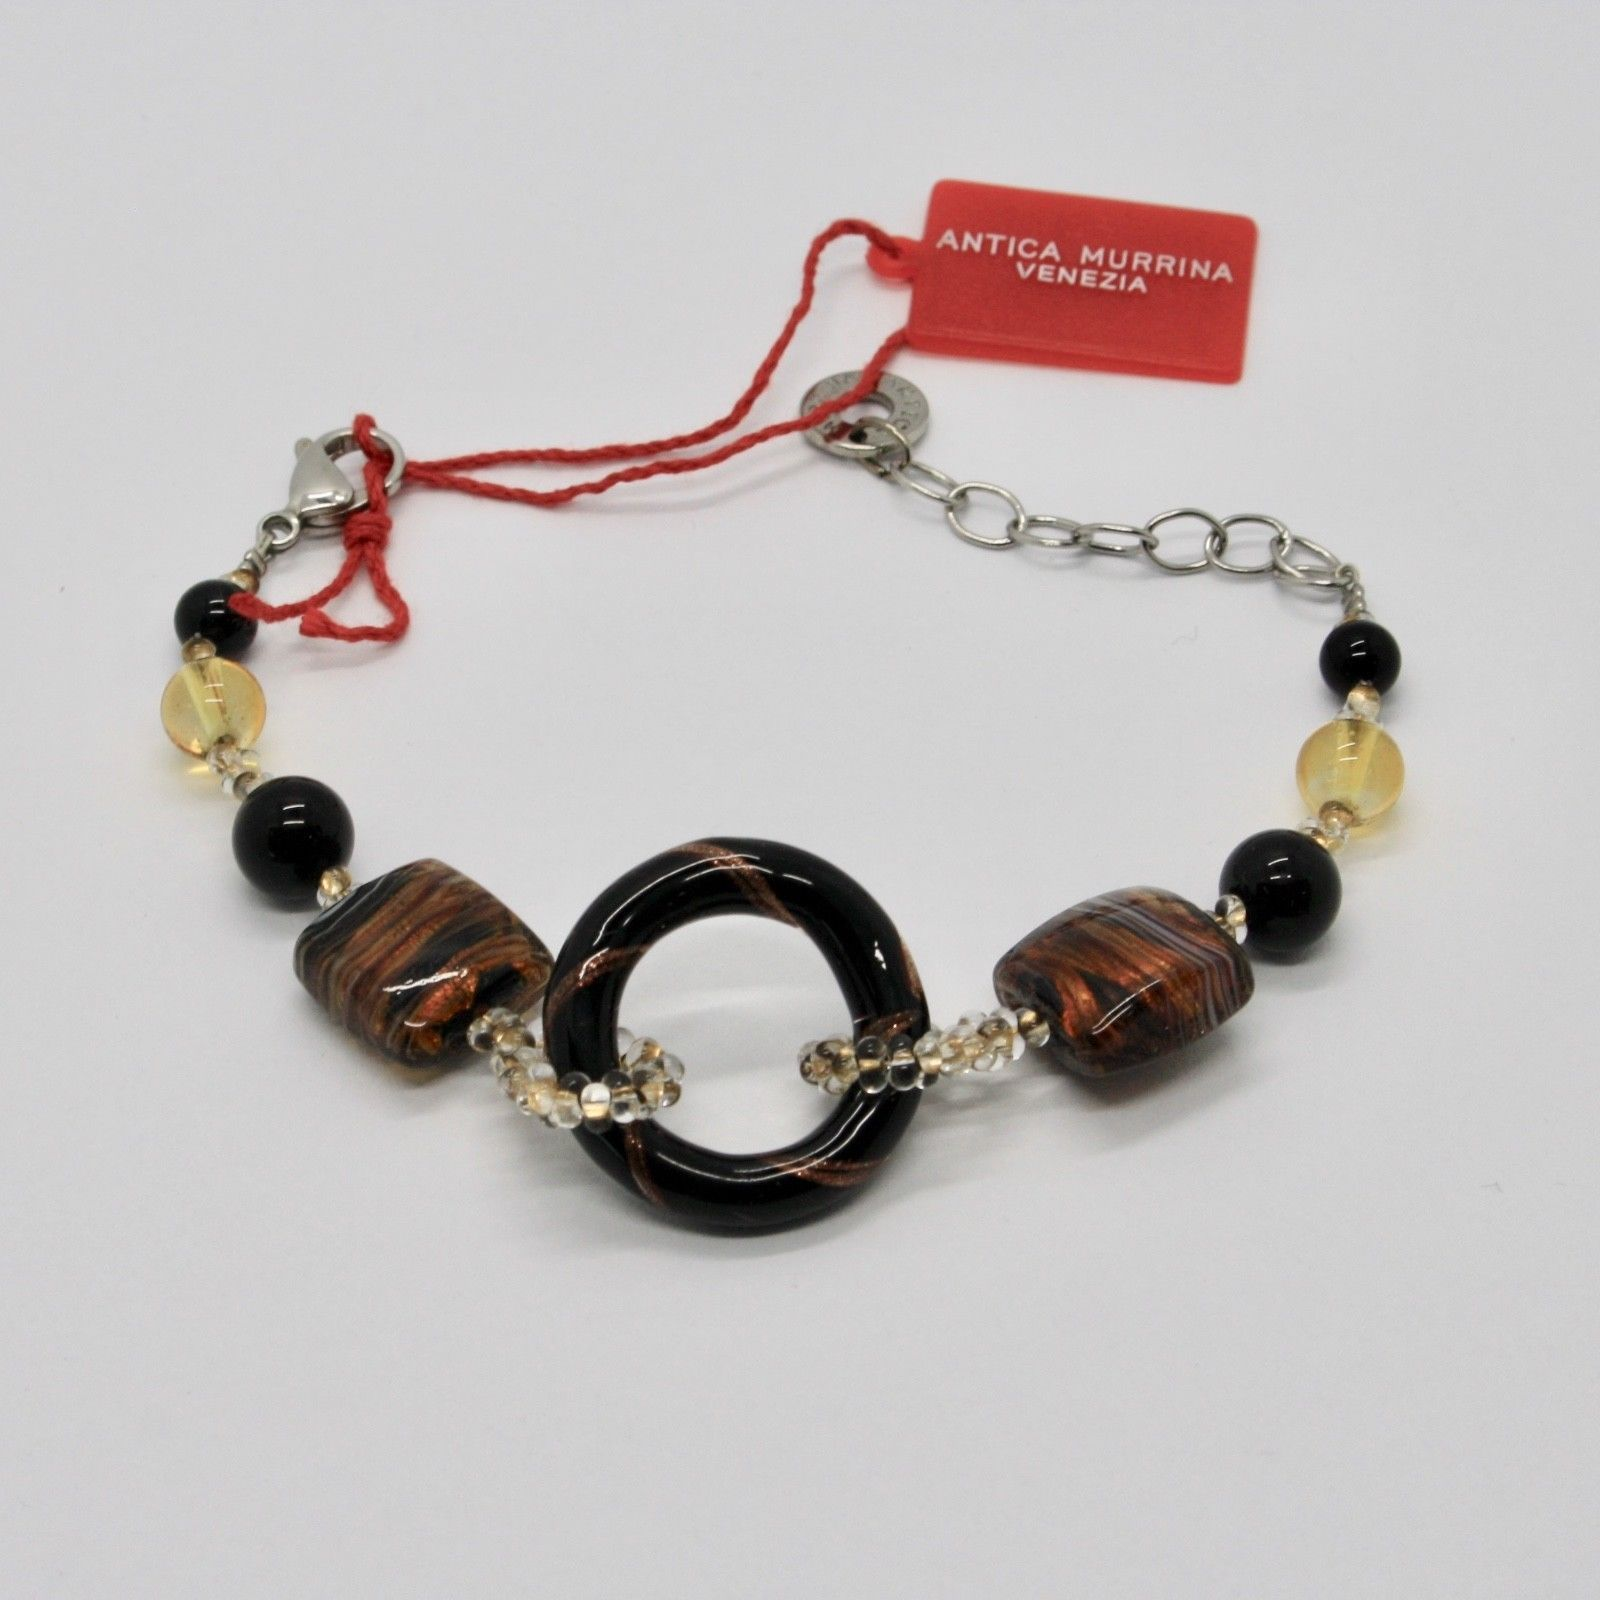 BRACELET ANTICA MURRINA VENEZIA WITH MURANO GLASS BROWN BLACK BEIGE BR567A14